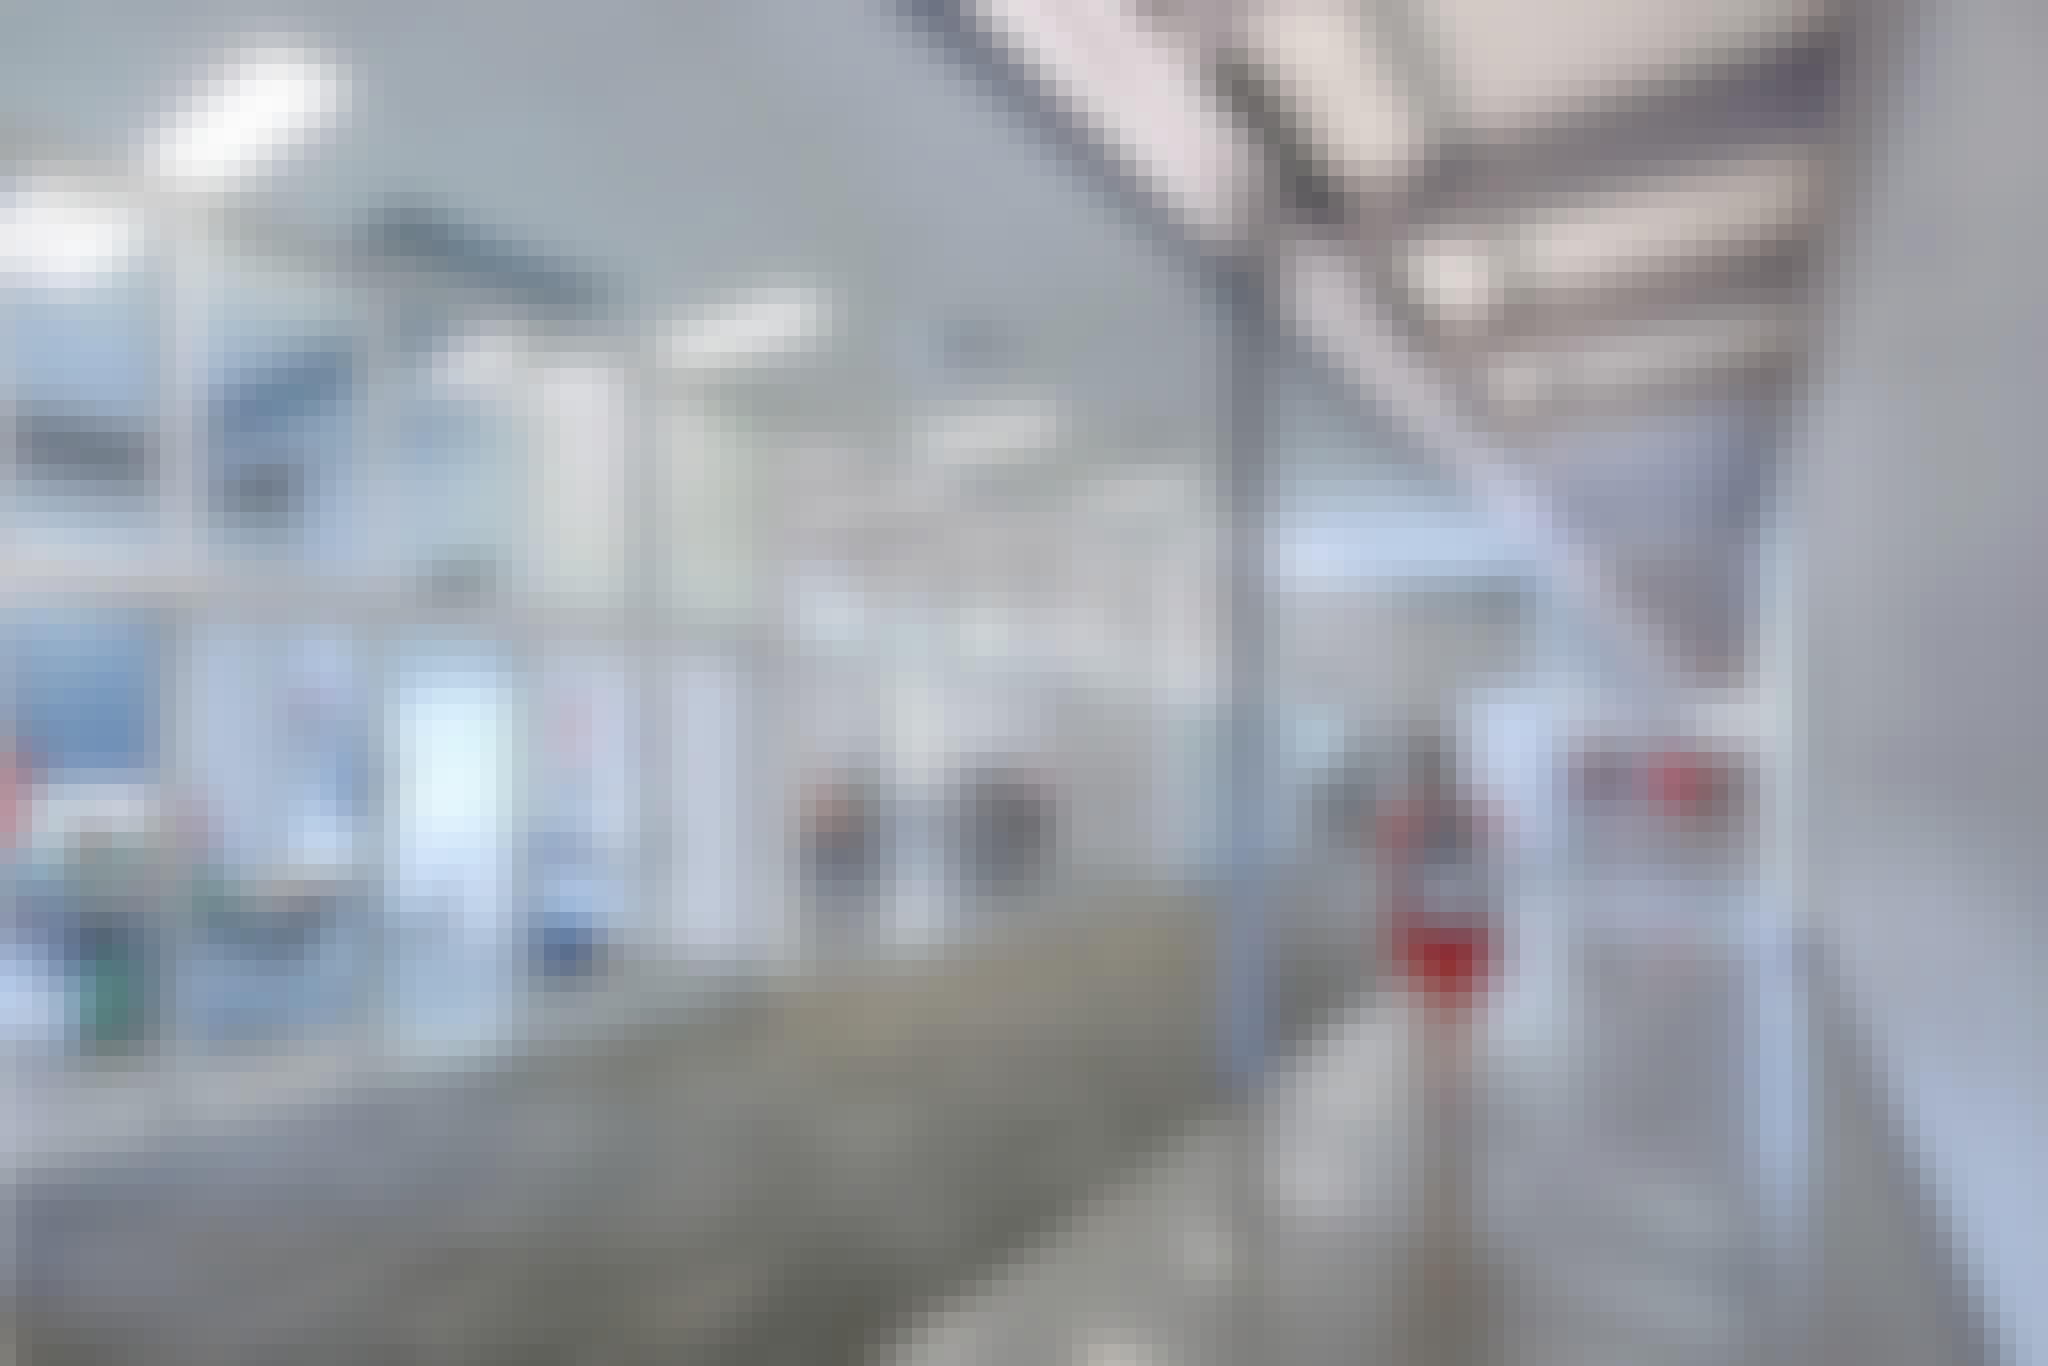 sound-rated opening glass walls in 21st Century classroom design for acoustical buffering to hallway